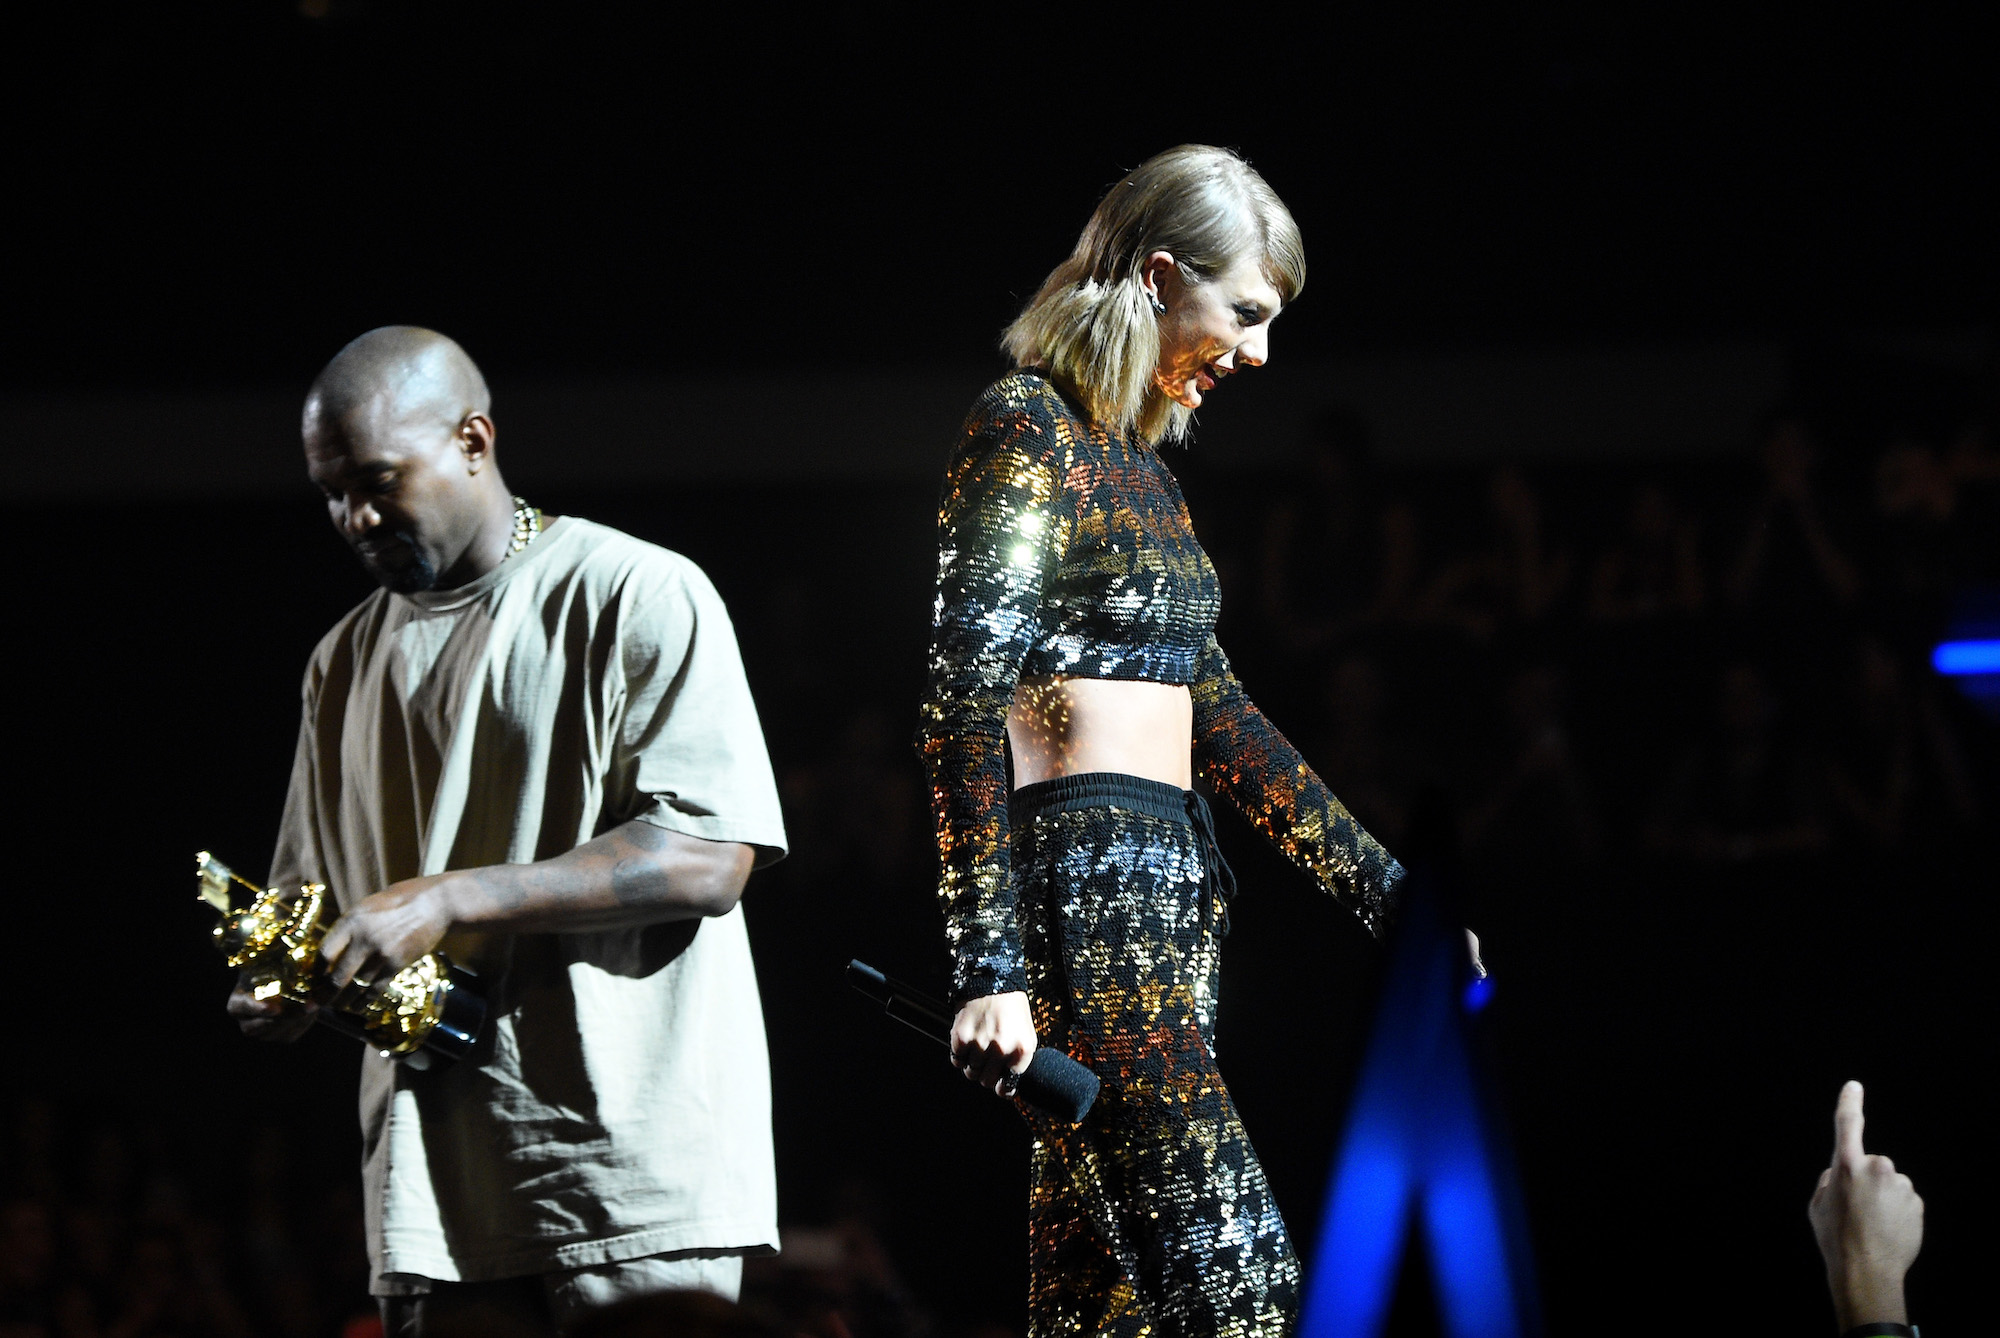 Kanye West accepts the Vanguard Award from recording artist Taylor Swift onstage during the 2015 MTV Video Music Awards.